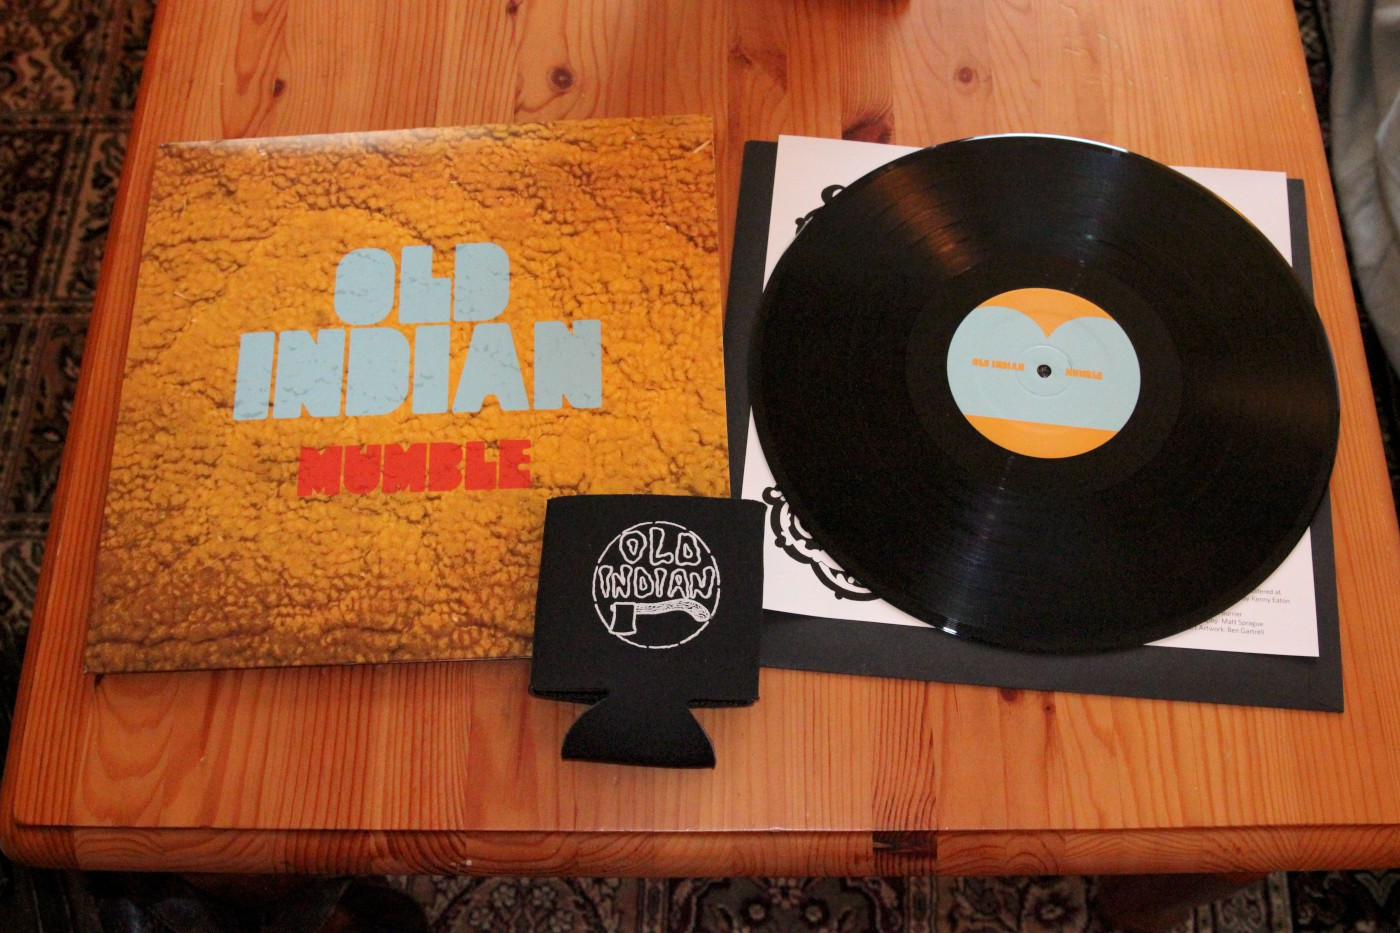 old indian mumble vinyl and package